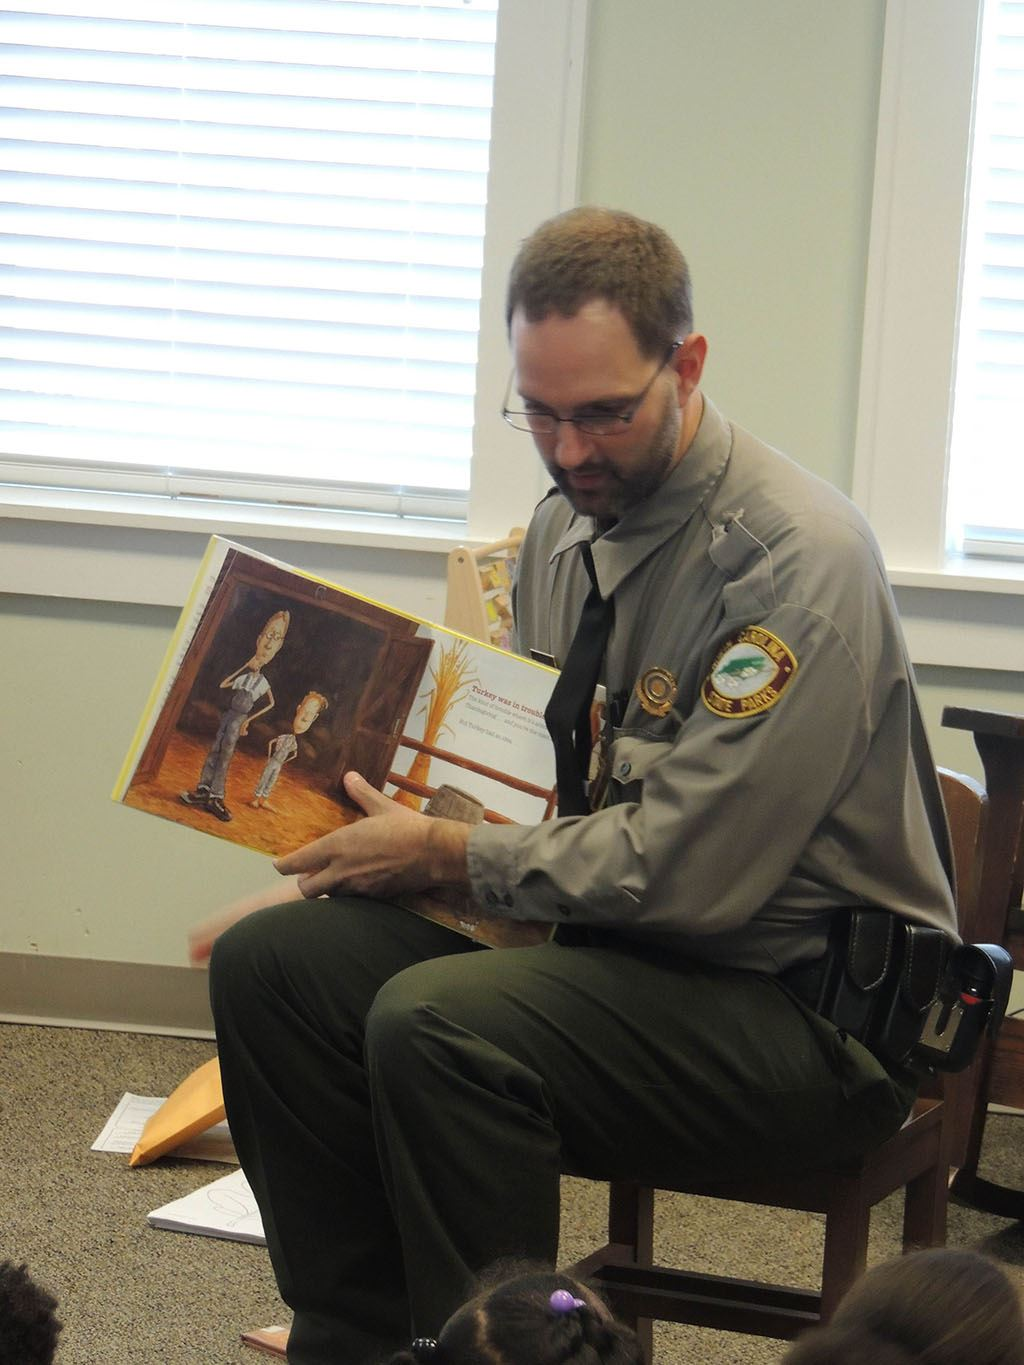 Uniformed man holding picture book